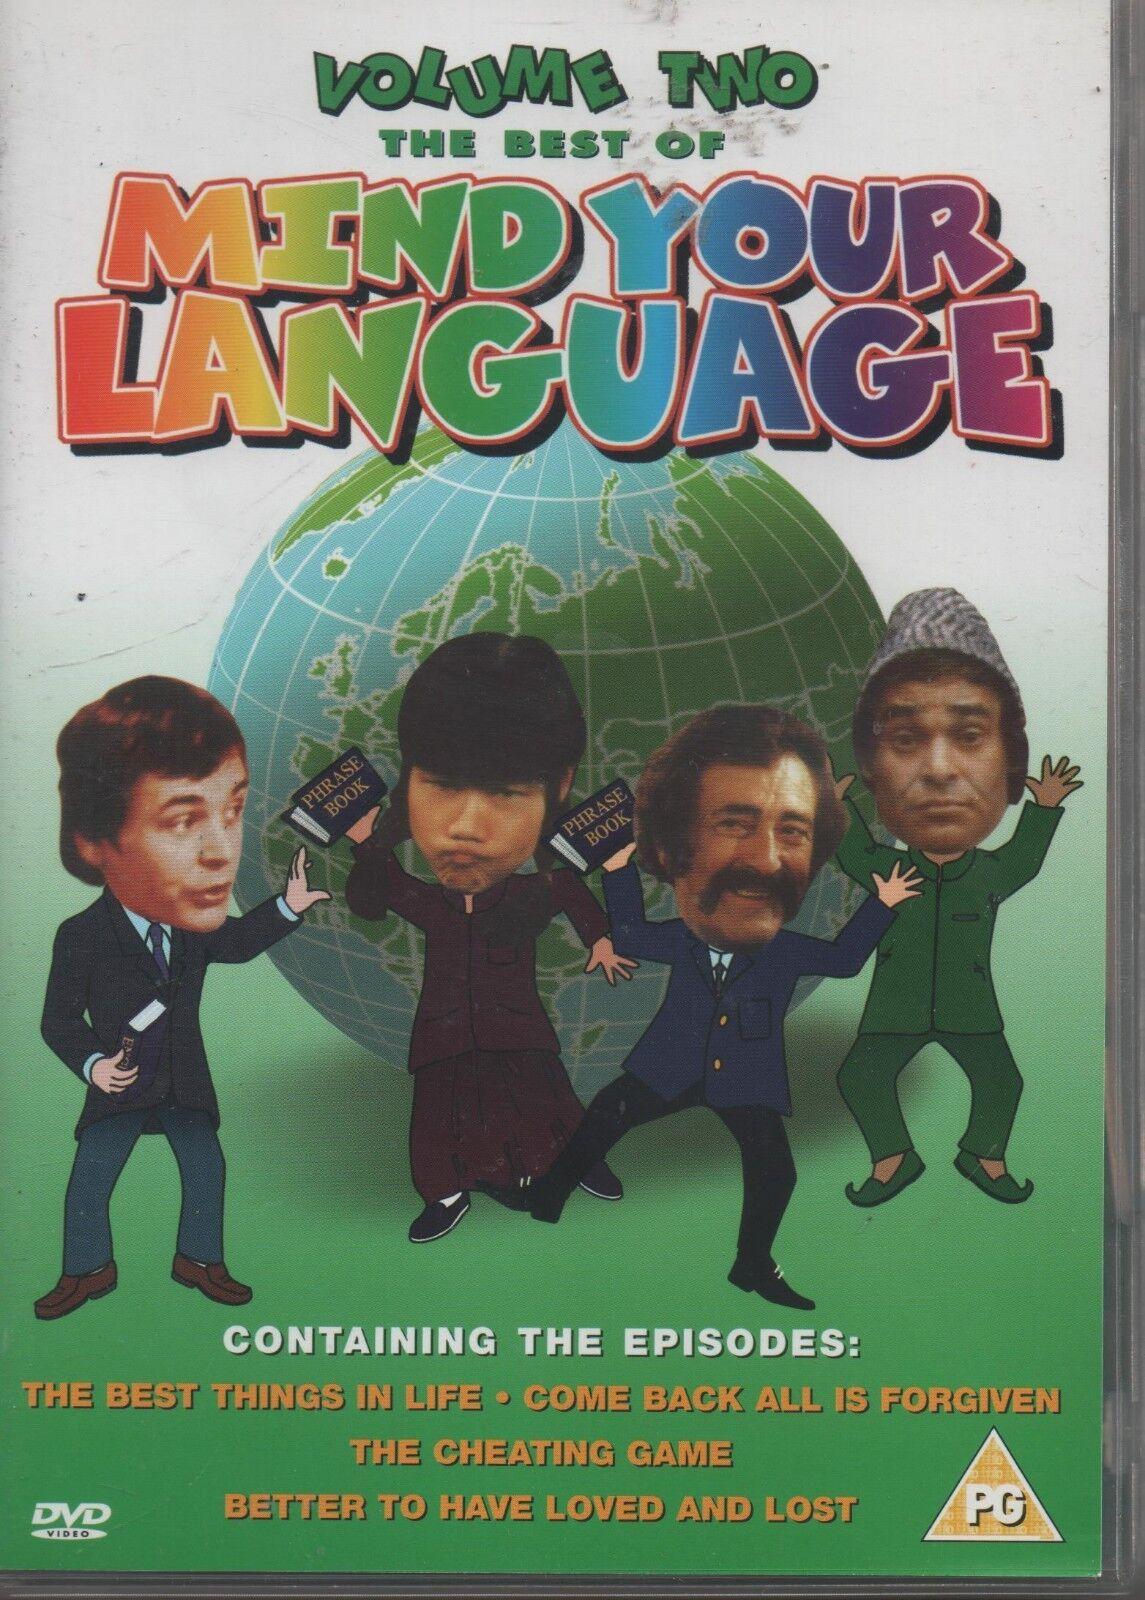 The Best Of Mind Your Language vol 2[Dvd] the best timing In Life,Cheating Game